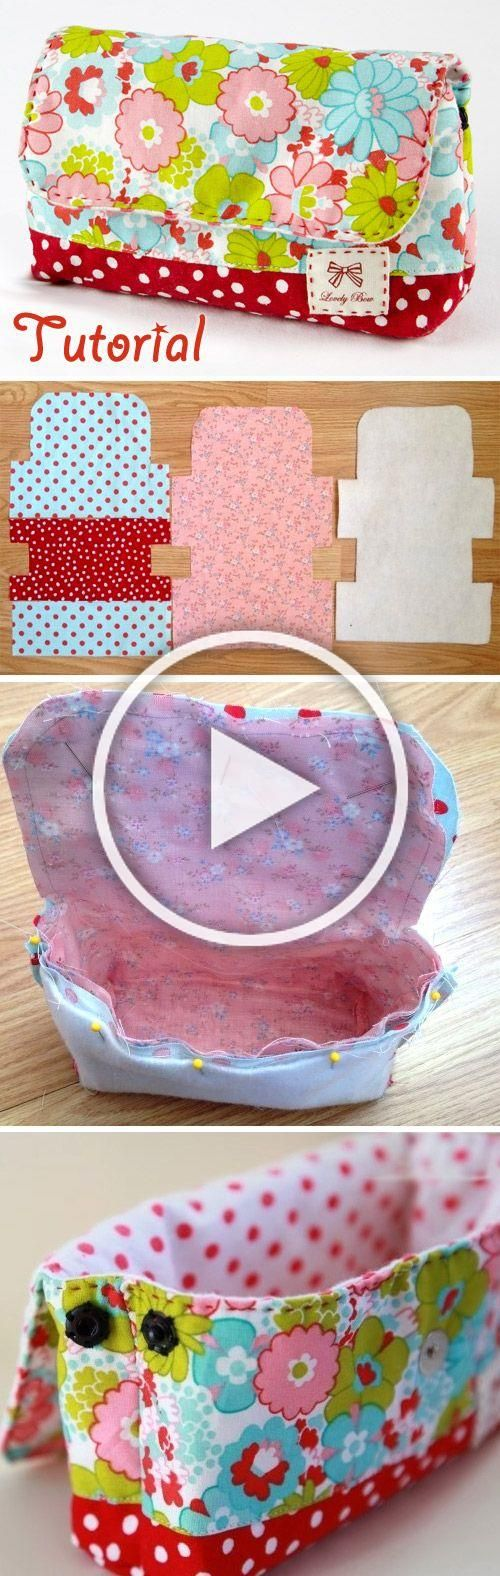 Sewing Patterns Messenger Bags Everyday Bags Laundry Bag  How to sew for beginners Sewing ideas Step by step illustration tutorial